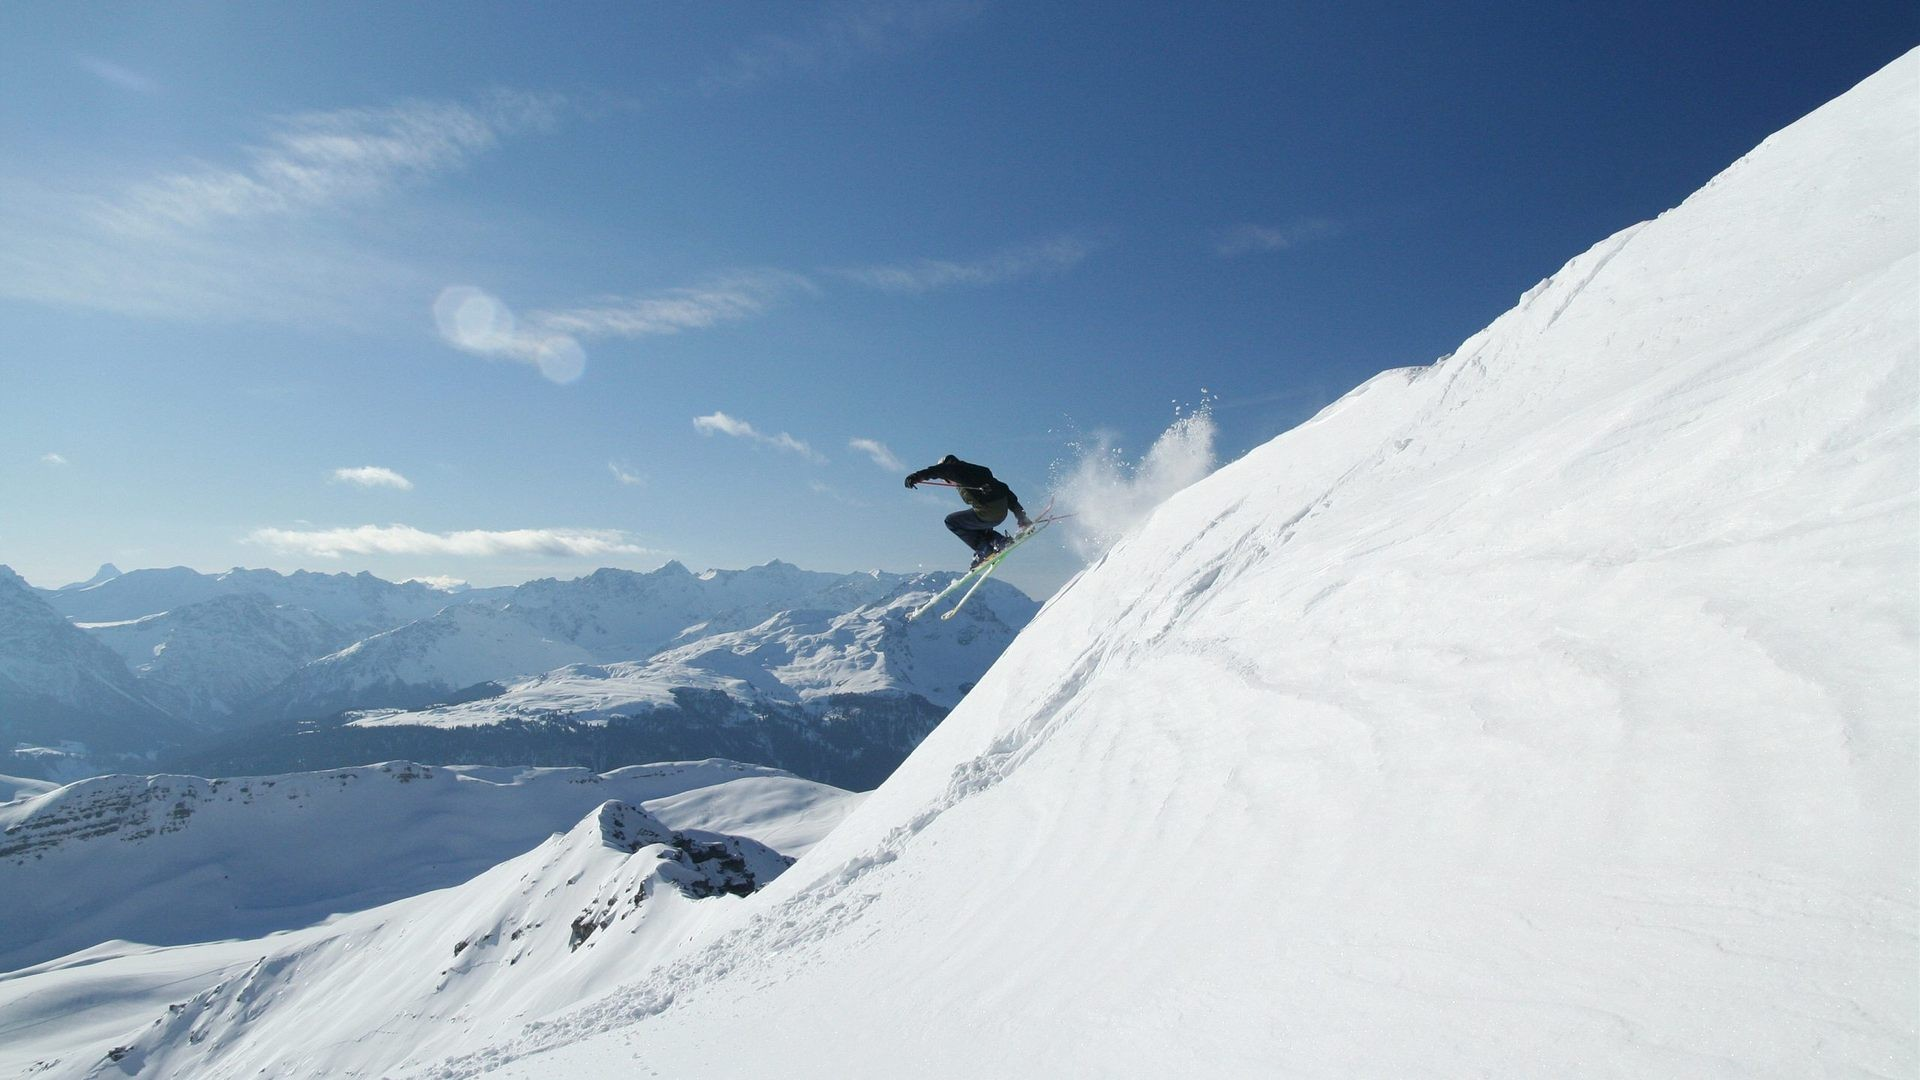 snow Sports Snowboarding Skiing HD Wallpaper